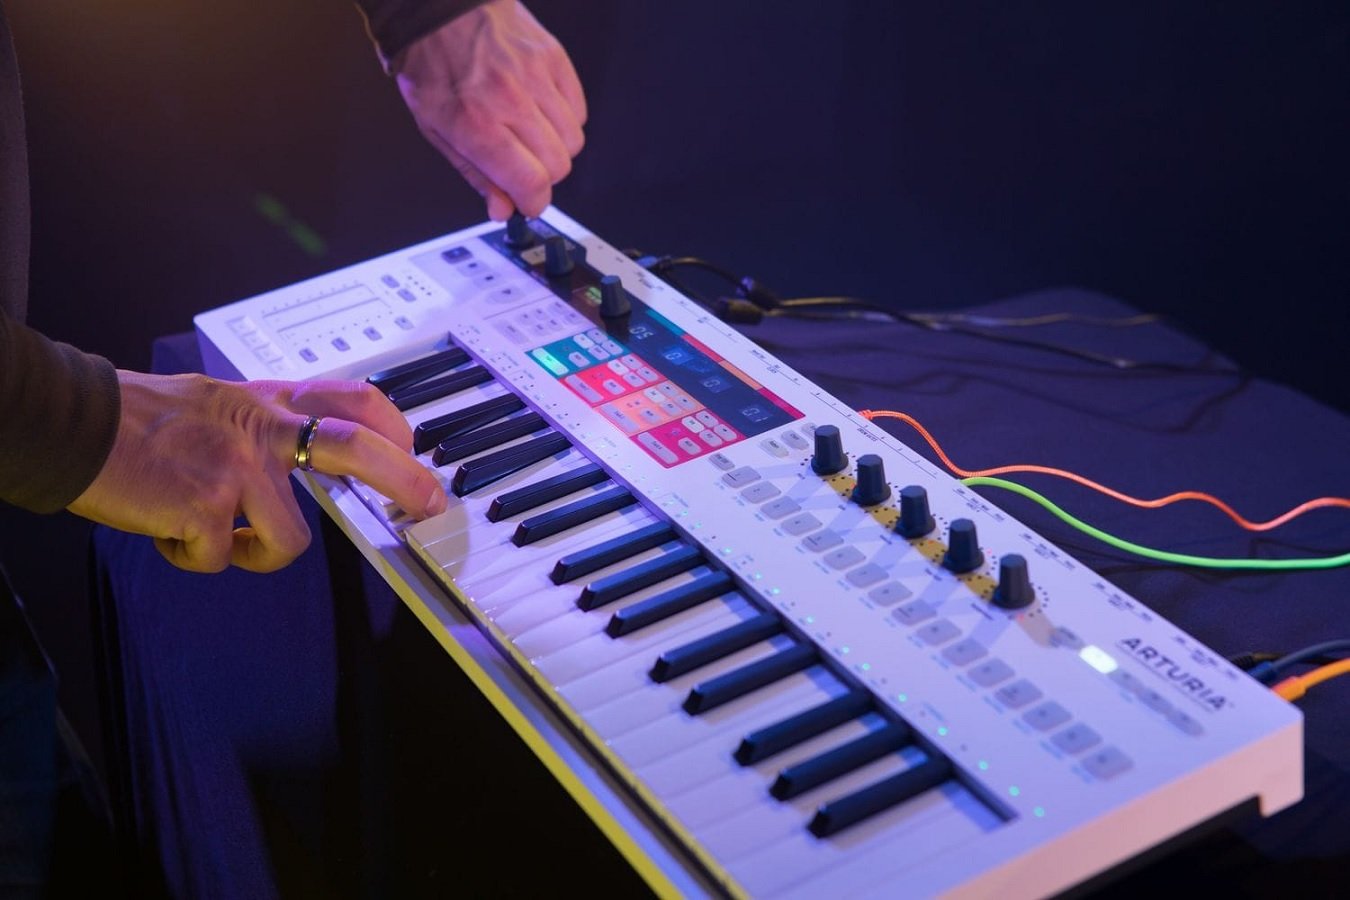 An action shot of the Arturia KeyStep Pro